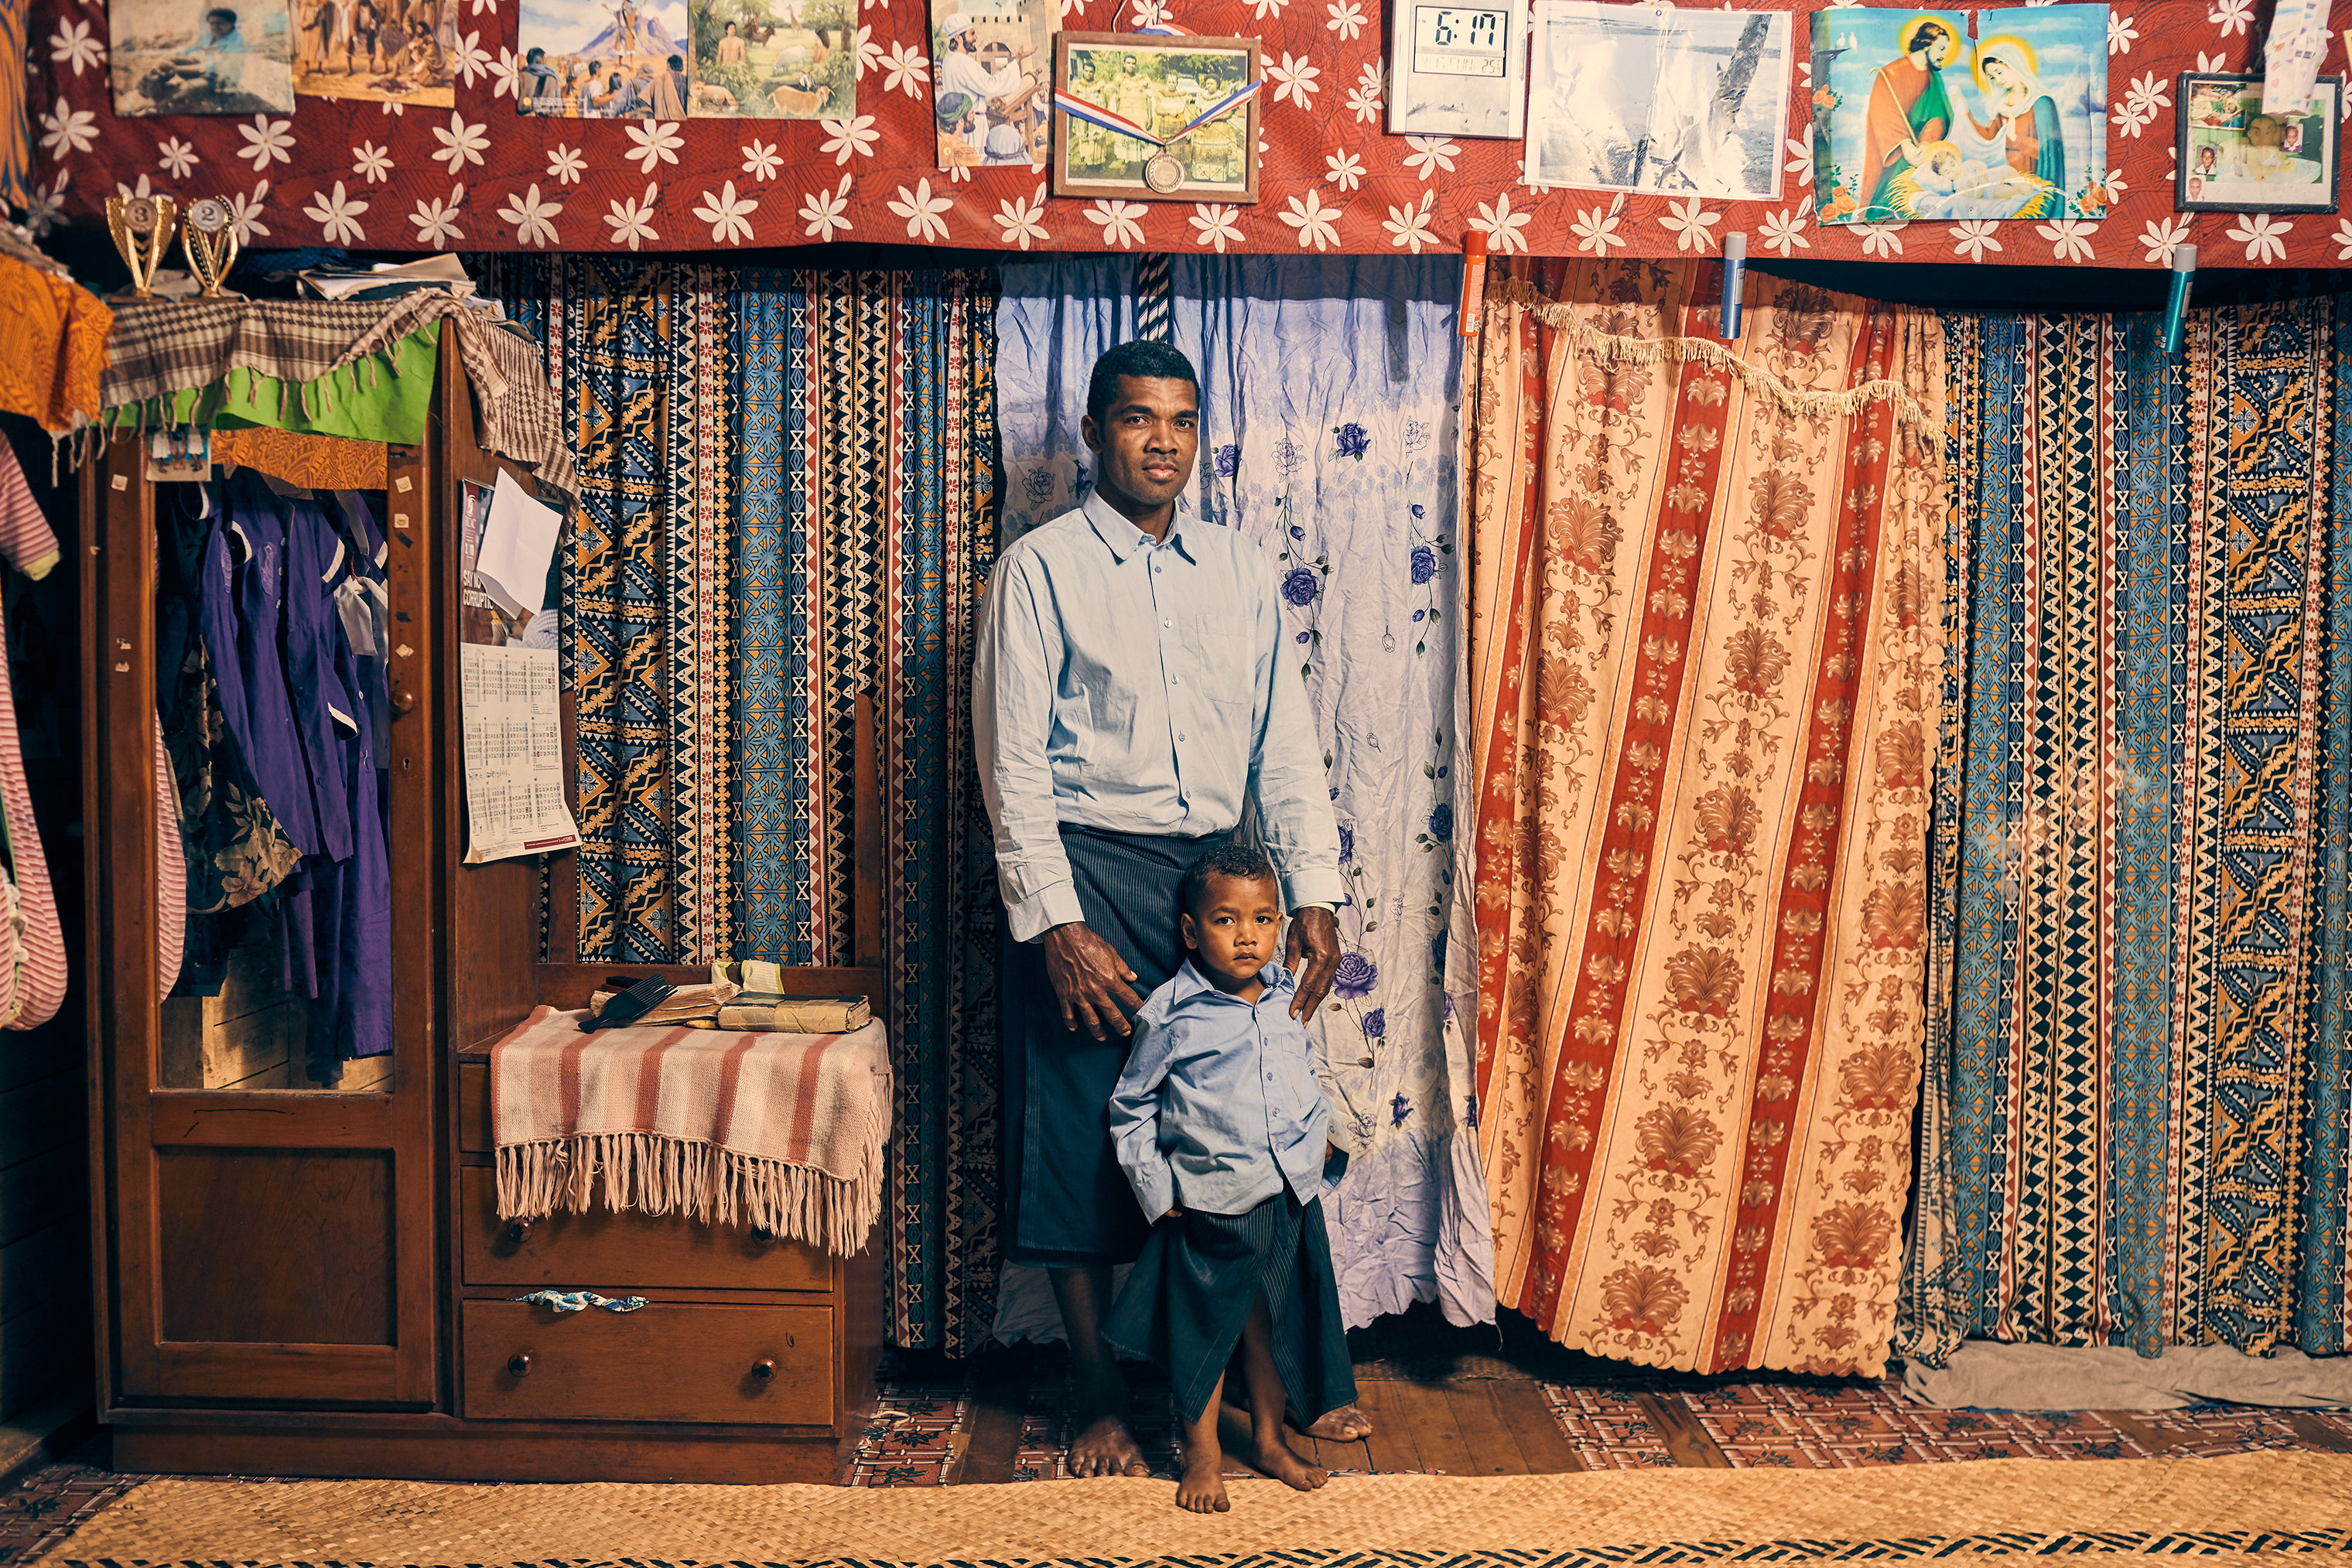 Apisai Logaivau and his son Simione Botu in their home in the relocated village. Logaivau lives here with his wife and four other children.